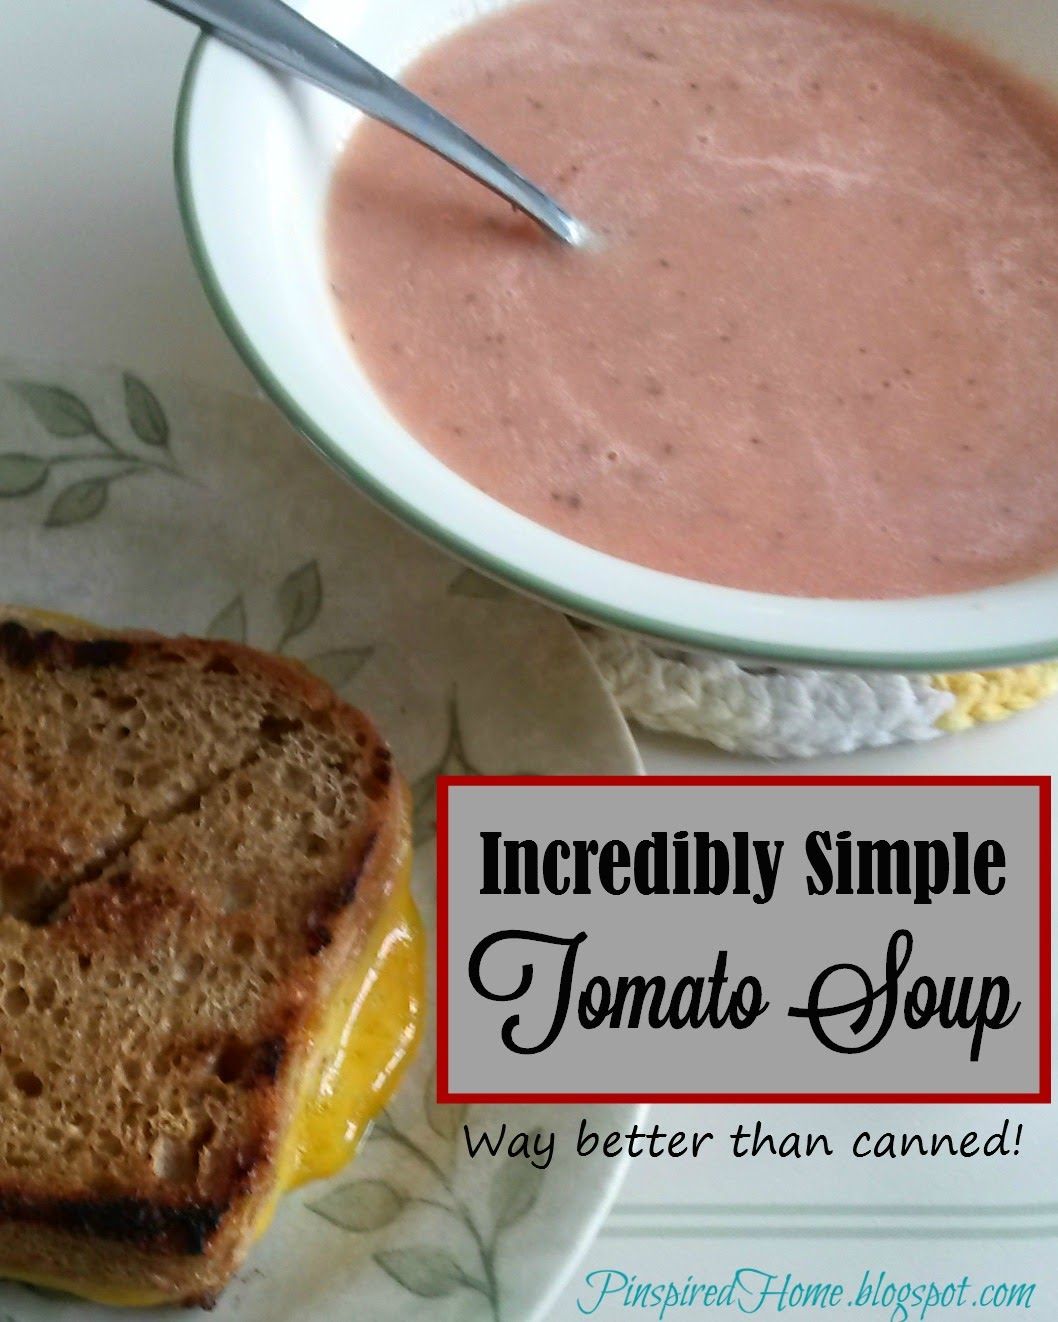 http://pinspiredhome.blogspot.com/2015/03/incredibly-simple-tomato-soup.html